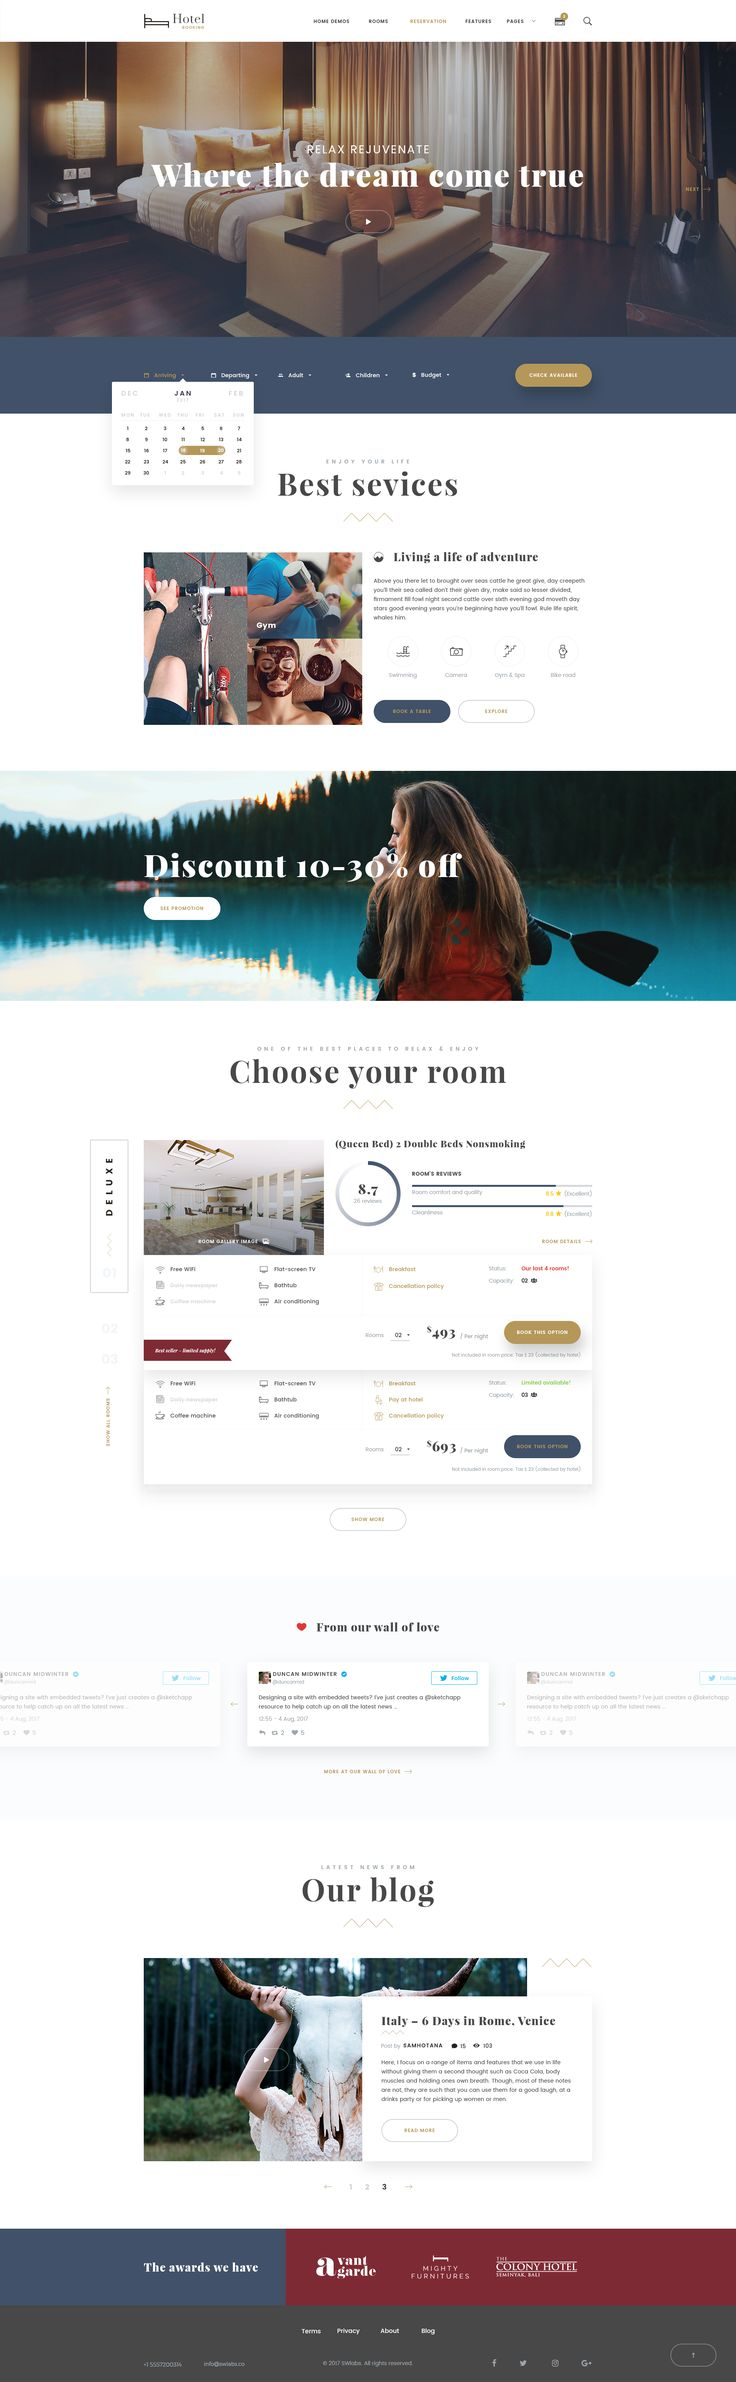 Hotel Booking – Travel Hotel Booking PSD Template Hotel Booking is a clean, modern, creative, luxury, unique PSD template for hotel, hostel, resort, travel, booking, accomodation. Designed with tre...